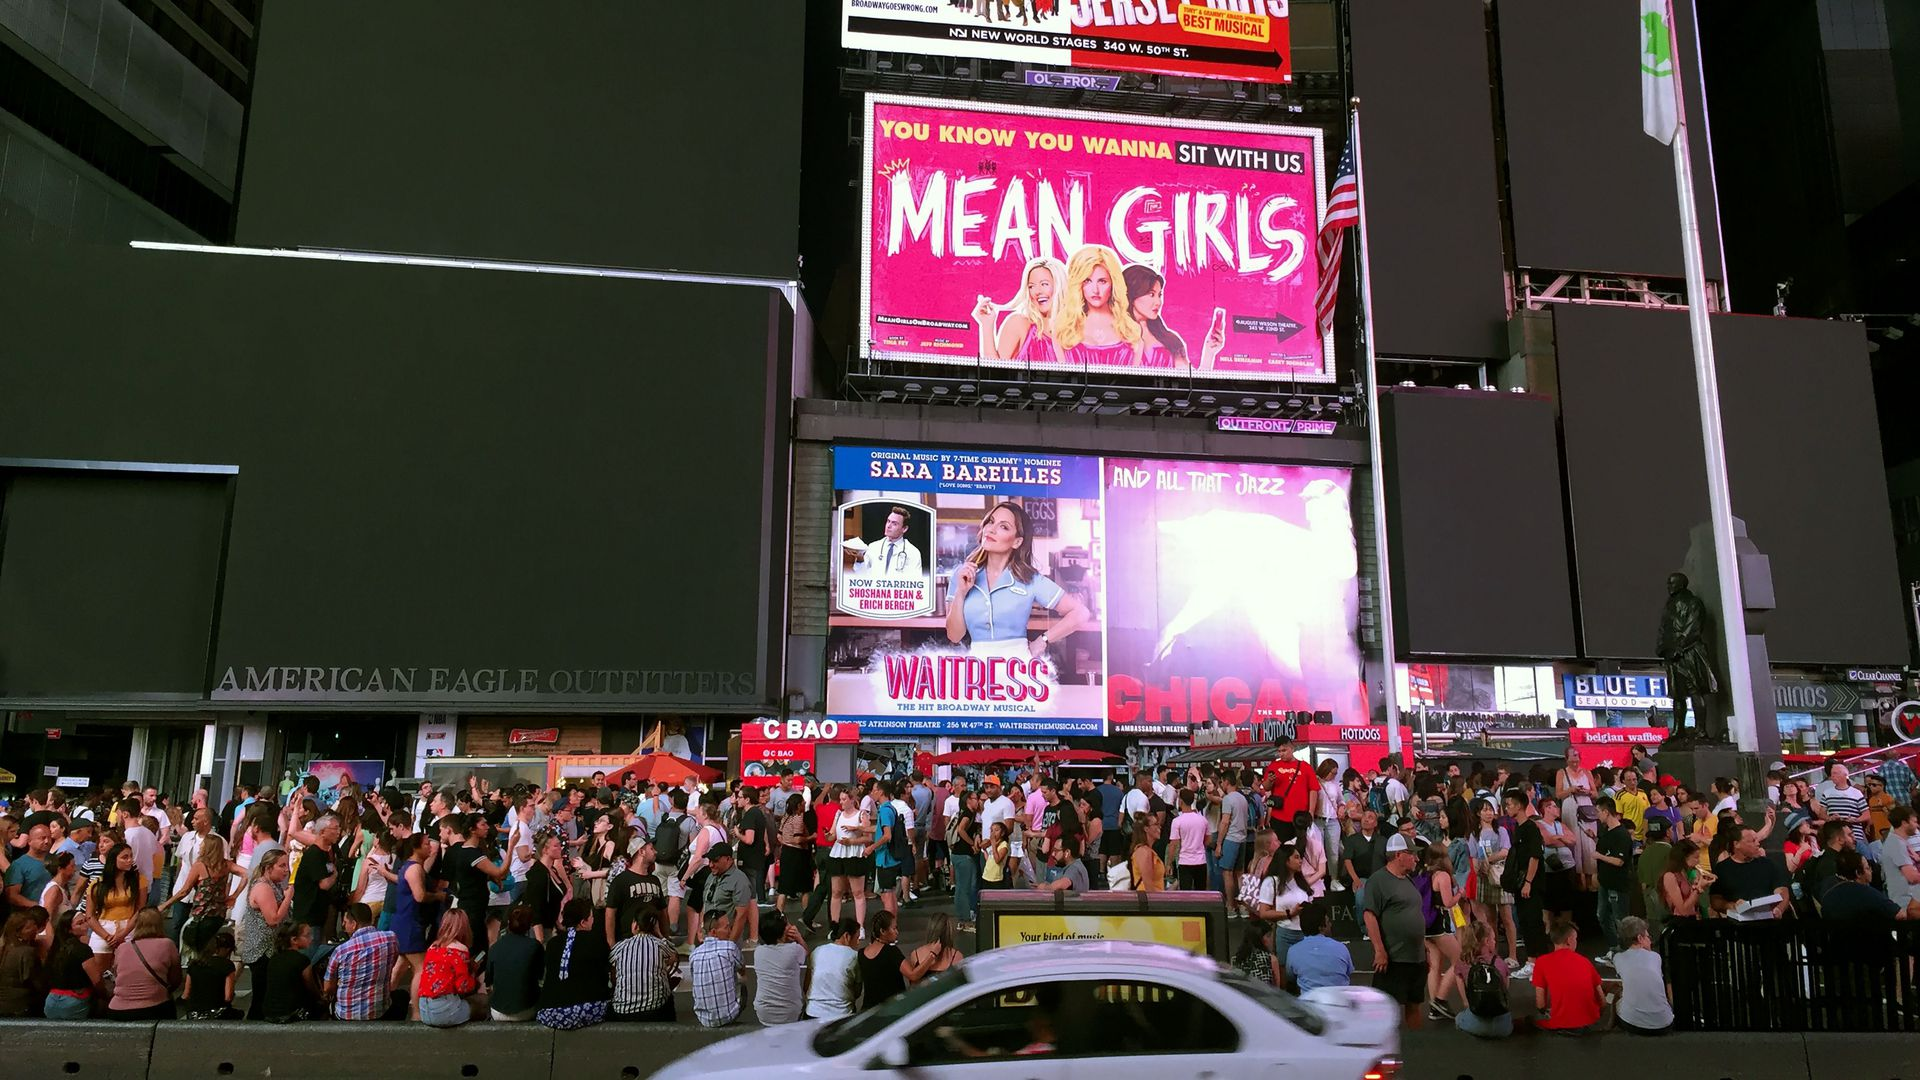 Times Square's billboards are seen black after a power outage hit Manhattan in New York City on July 13, 2019.